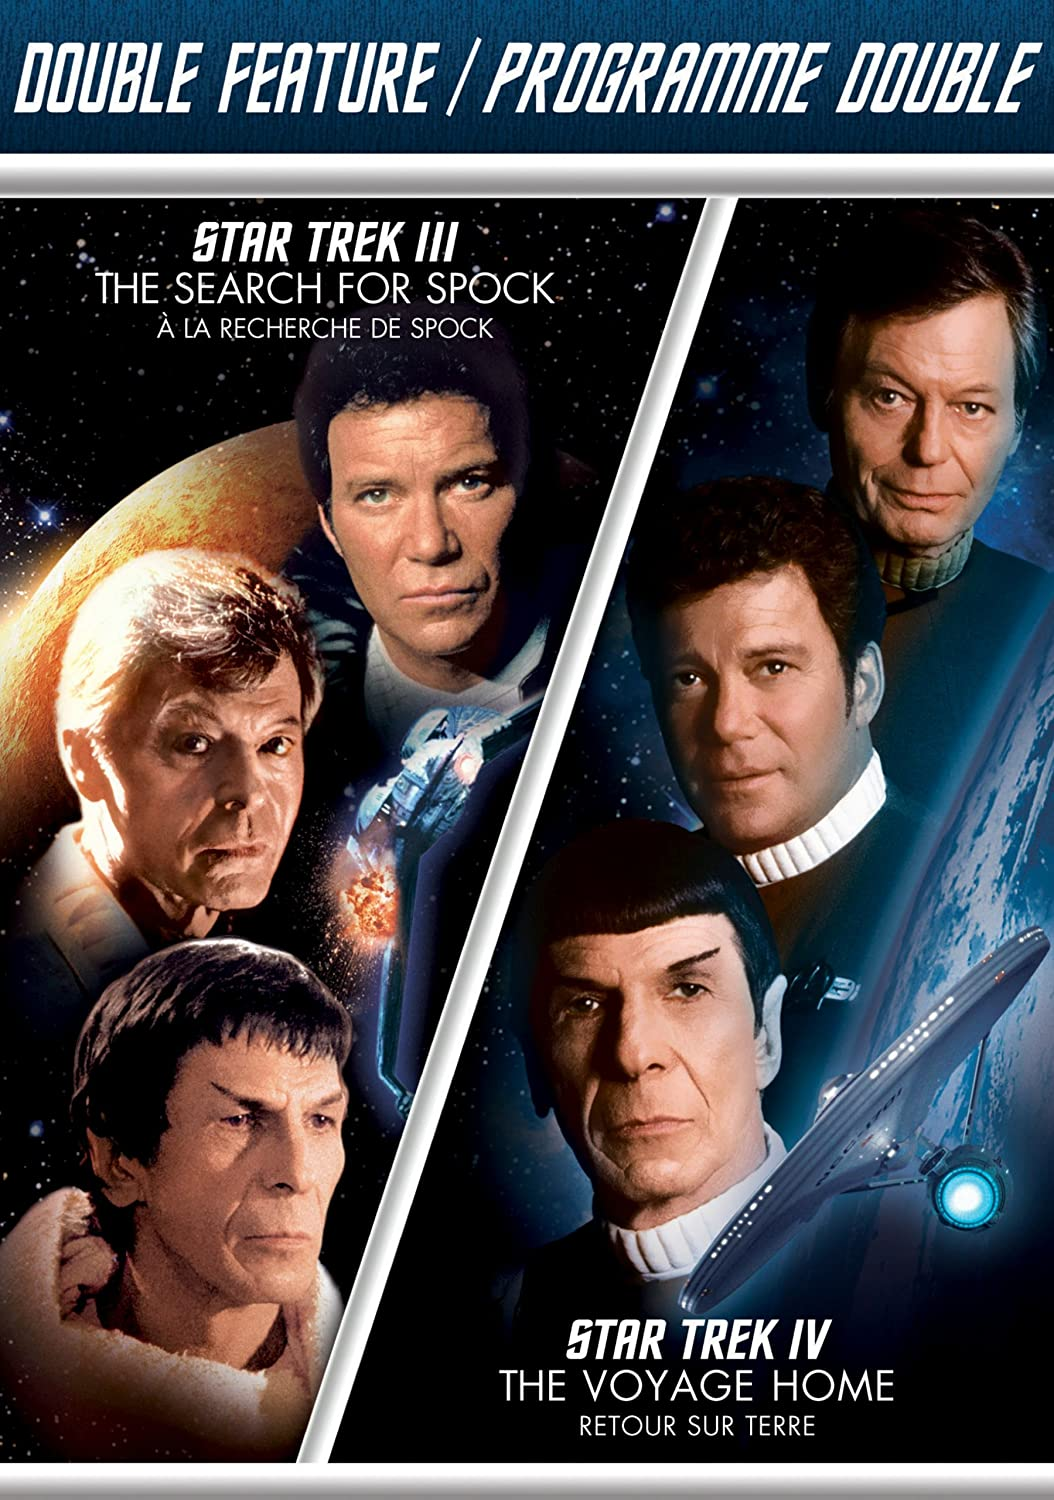 Star Trek III: Search for Spock / Star Trek IV: The Voyage Home (Double Feature)